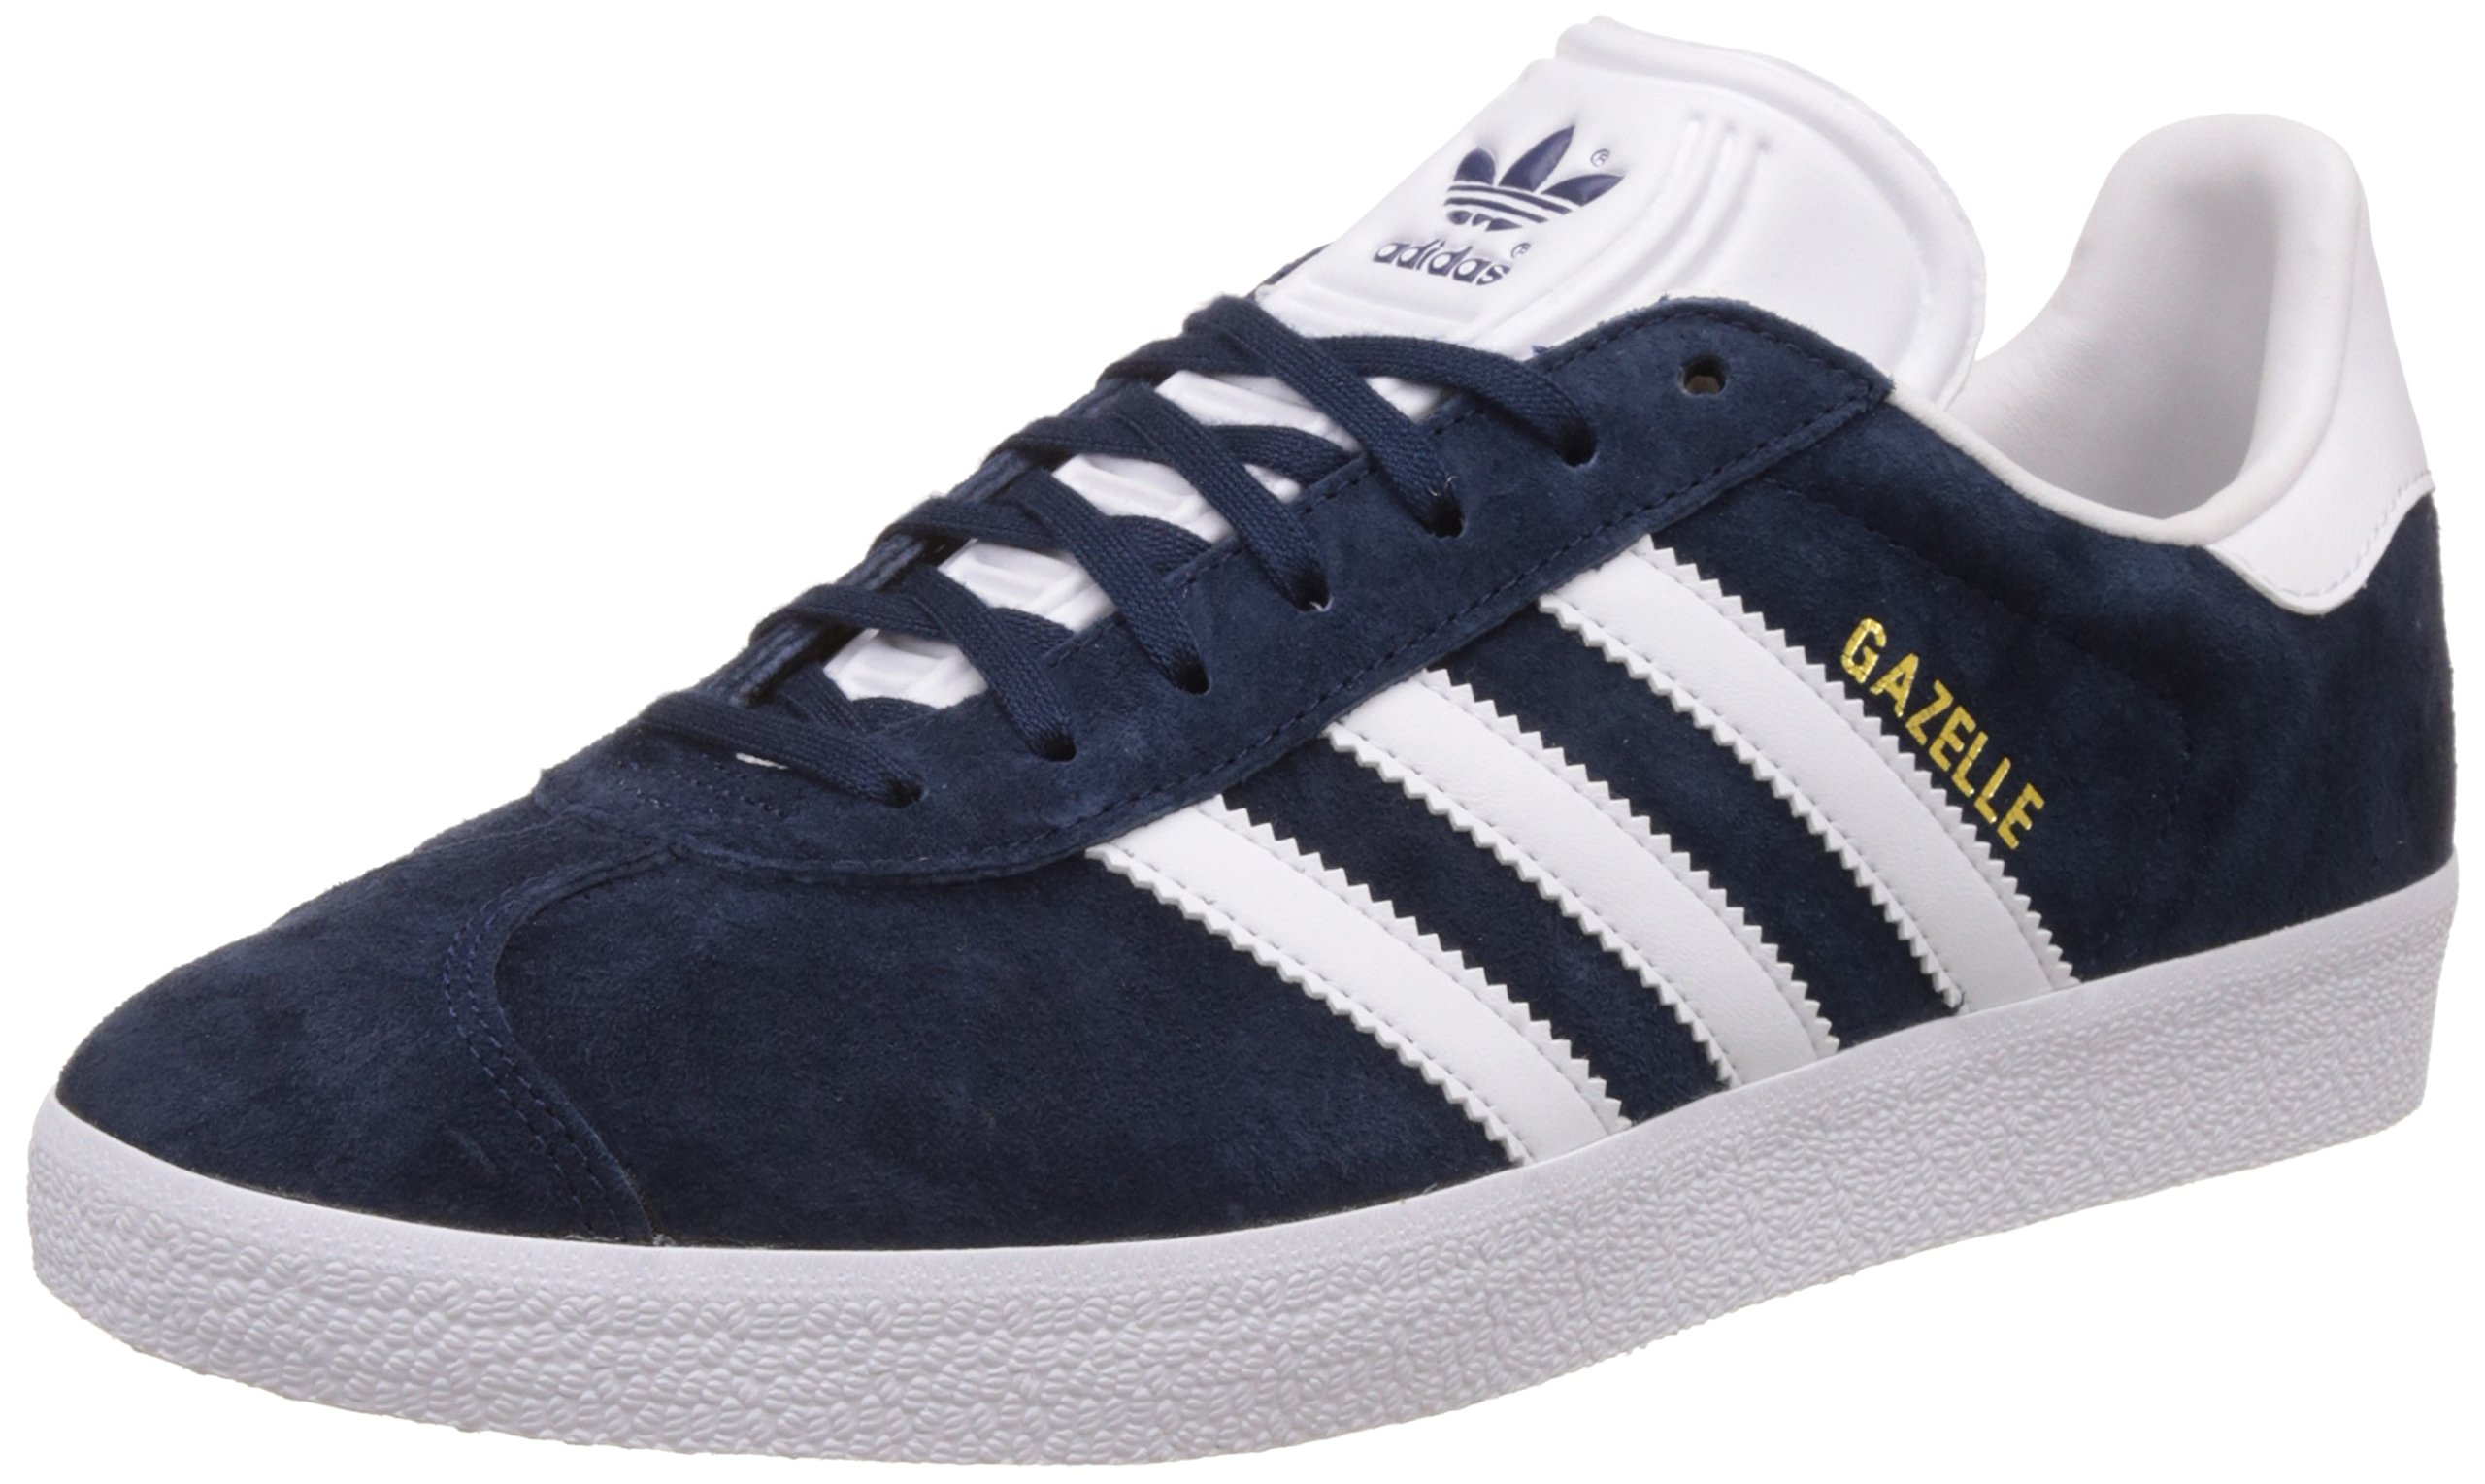 adidas men s gazelle gymnastics shoes